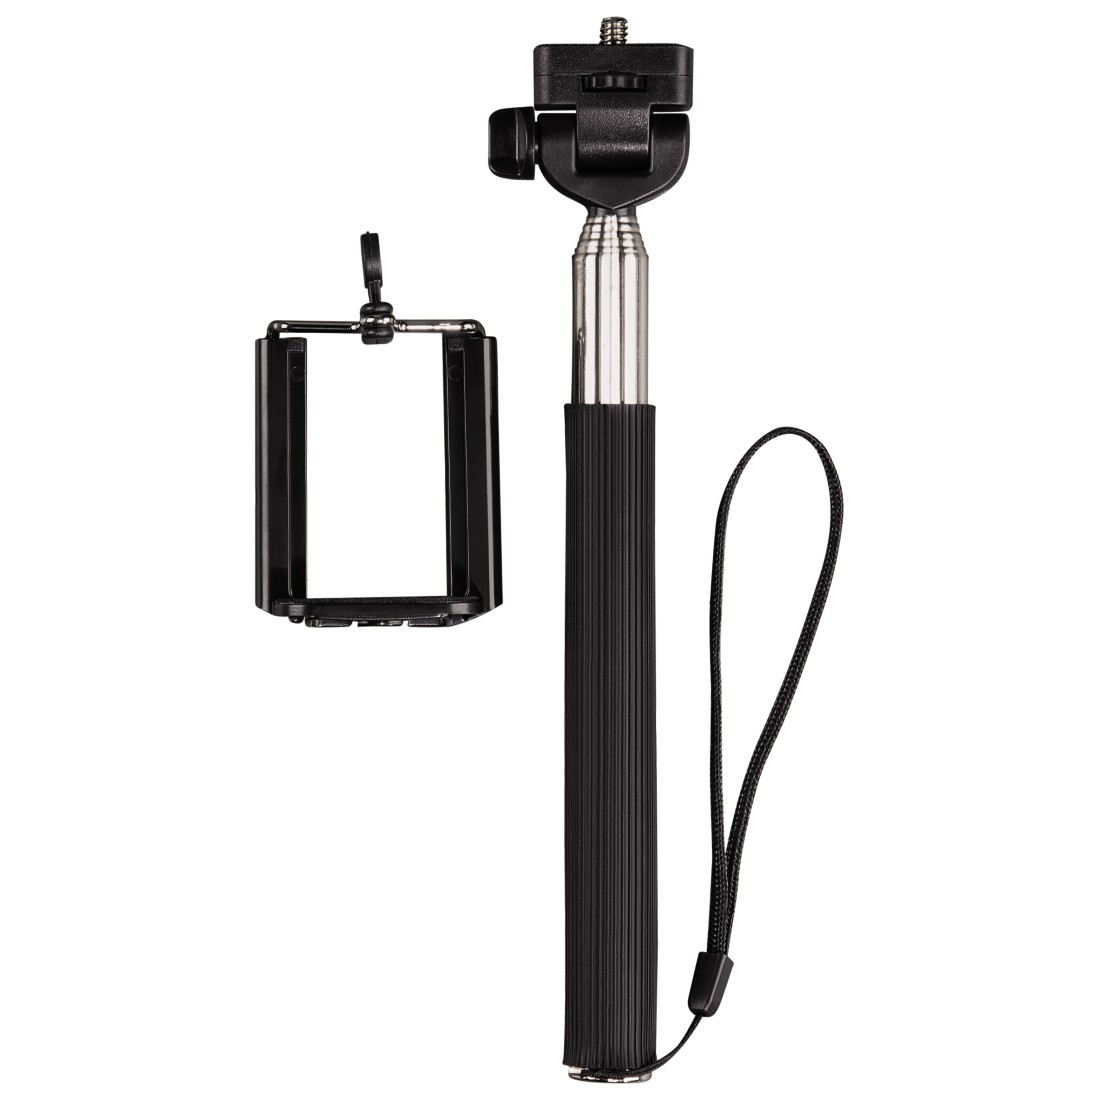 "abx3 High-Res Image 3 - Hama, ""Moments 100"" Selfie Stick, black"